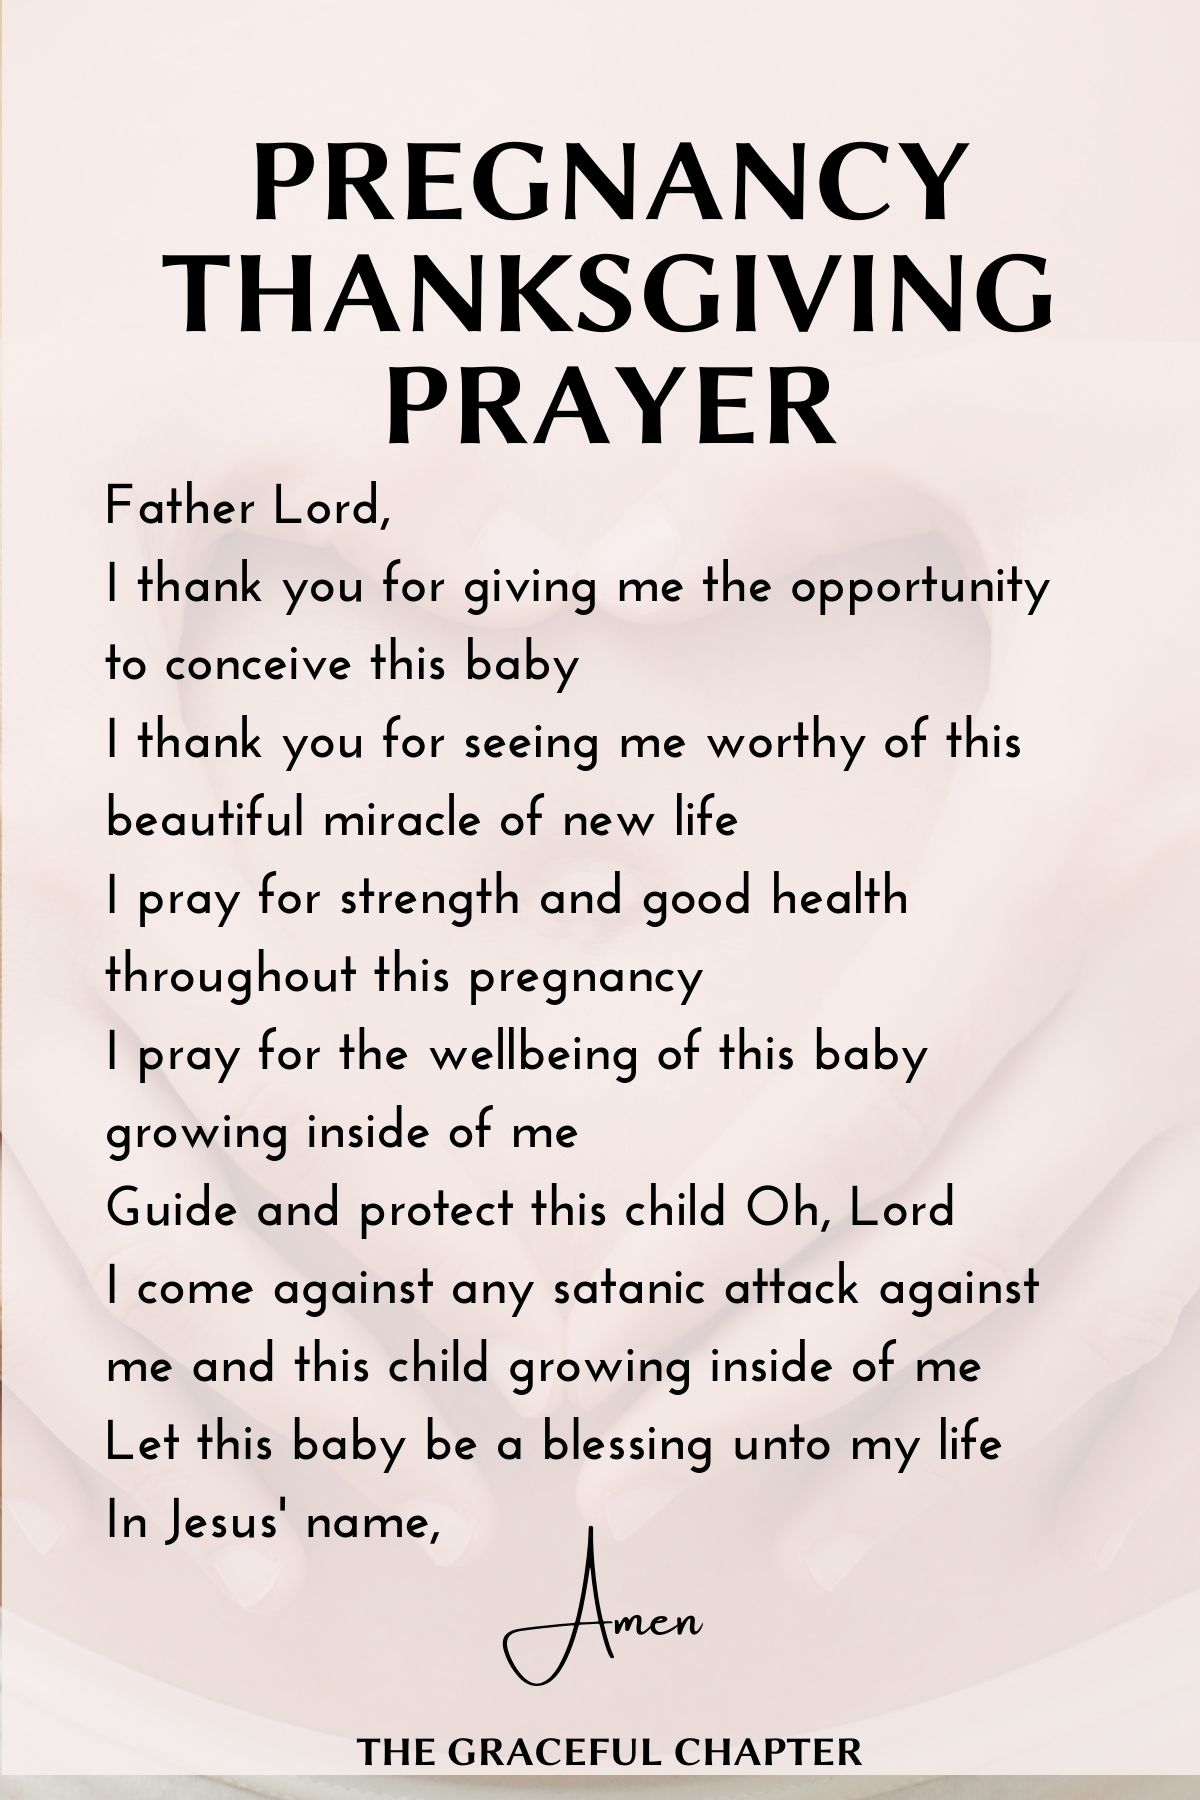 Pregnancy Thanksgiving prayer